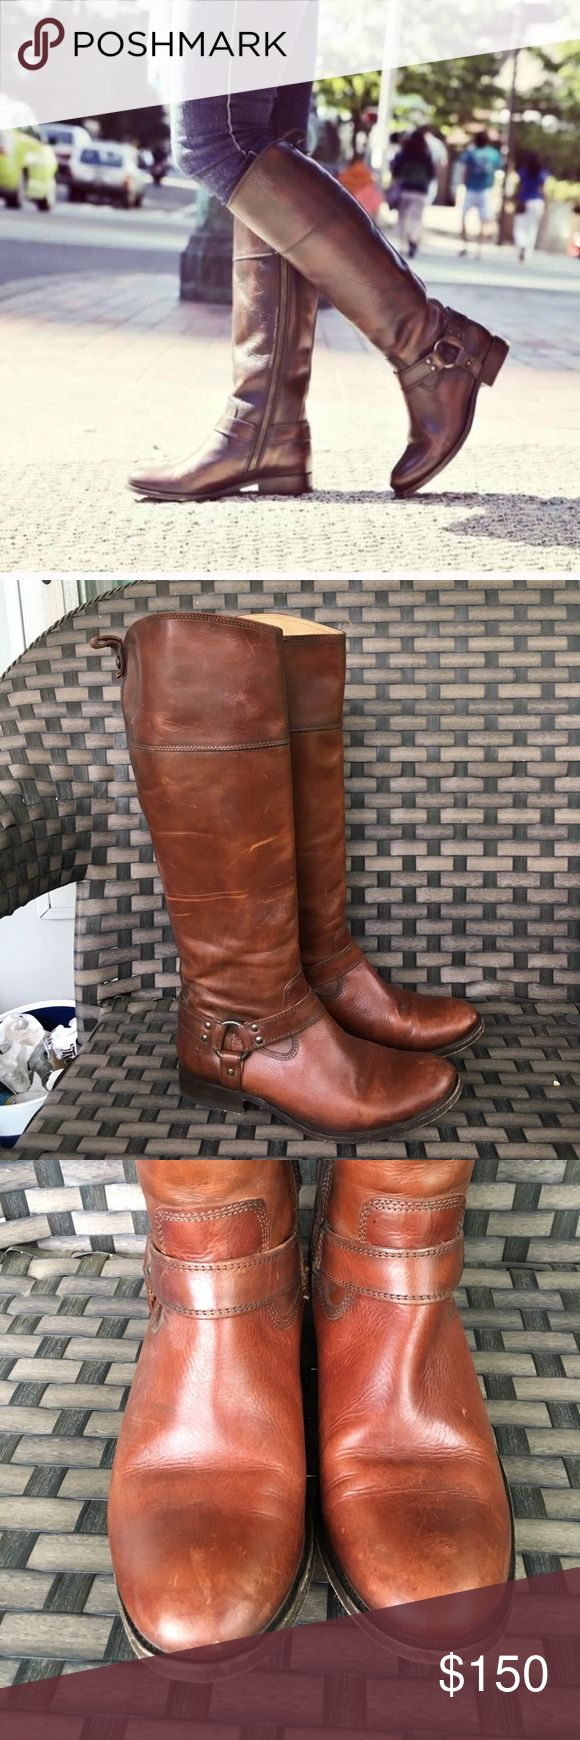 "Brown tall frye Melissa harness riding boot 10 Calf 16"" good preowned condition Frye Shoes Heeled Boots"